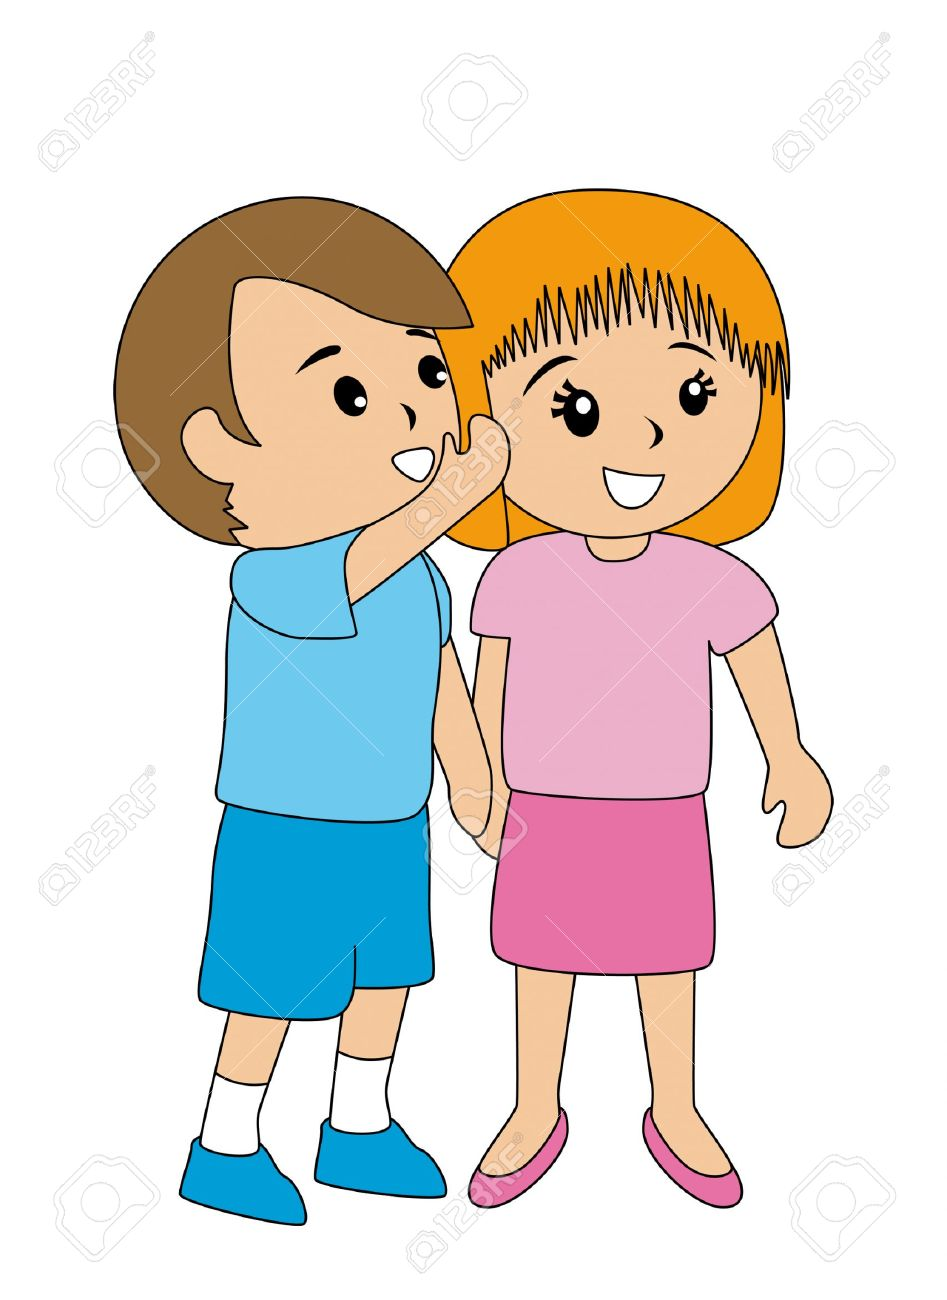 Whispering People Clipart Free.